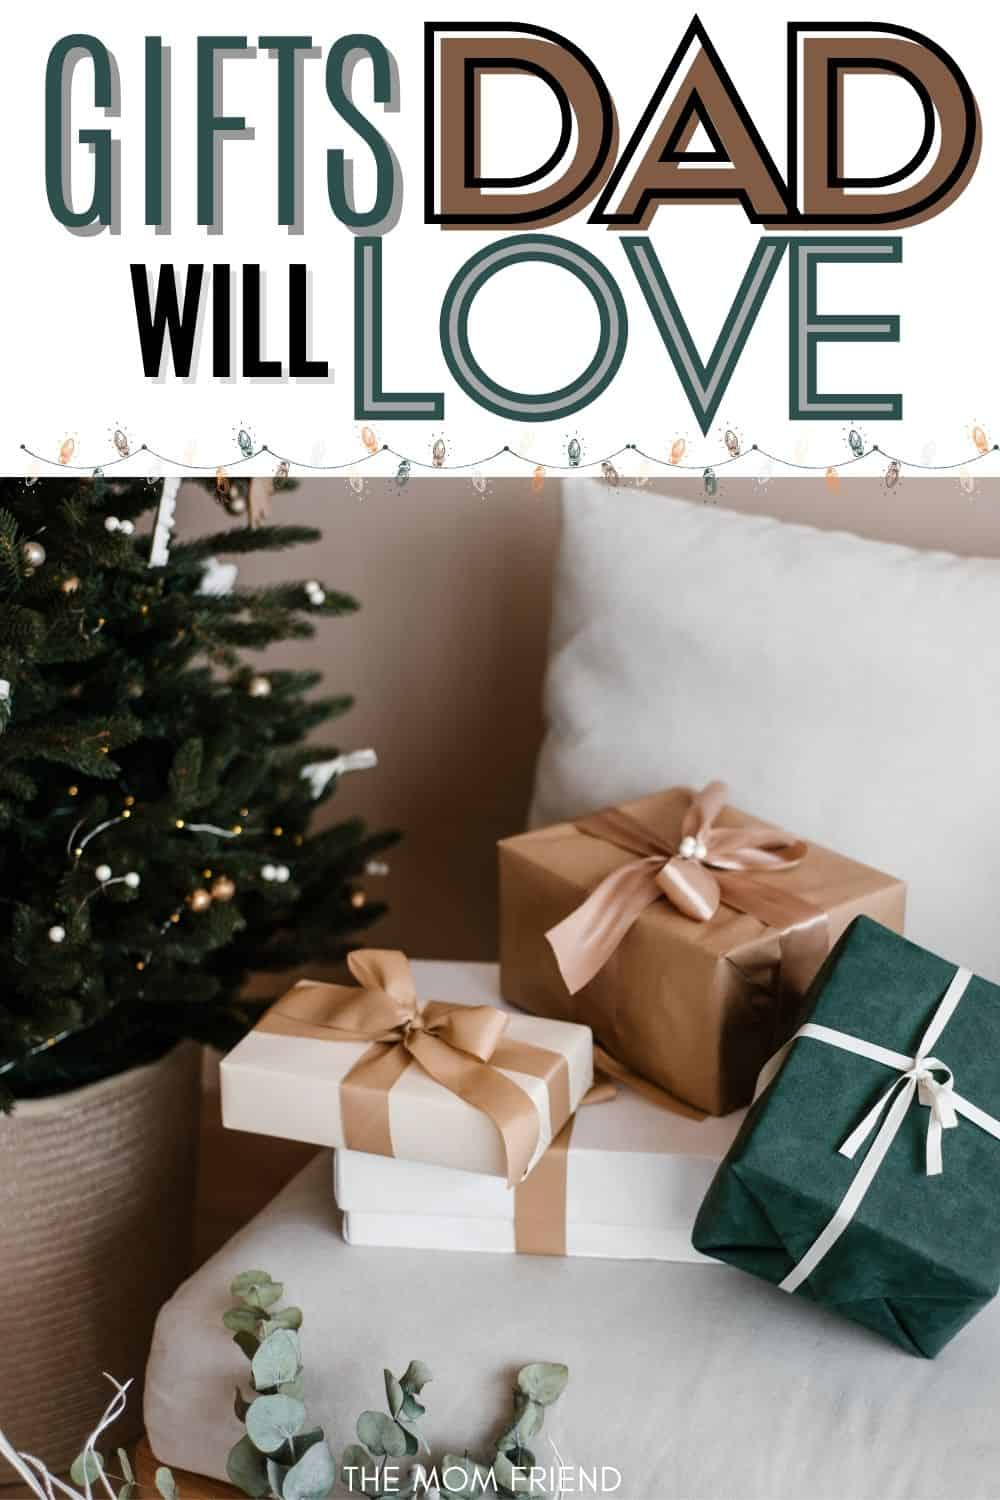 christmas tree with gifts for dad wrapped and text gifts dad will love